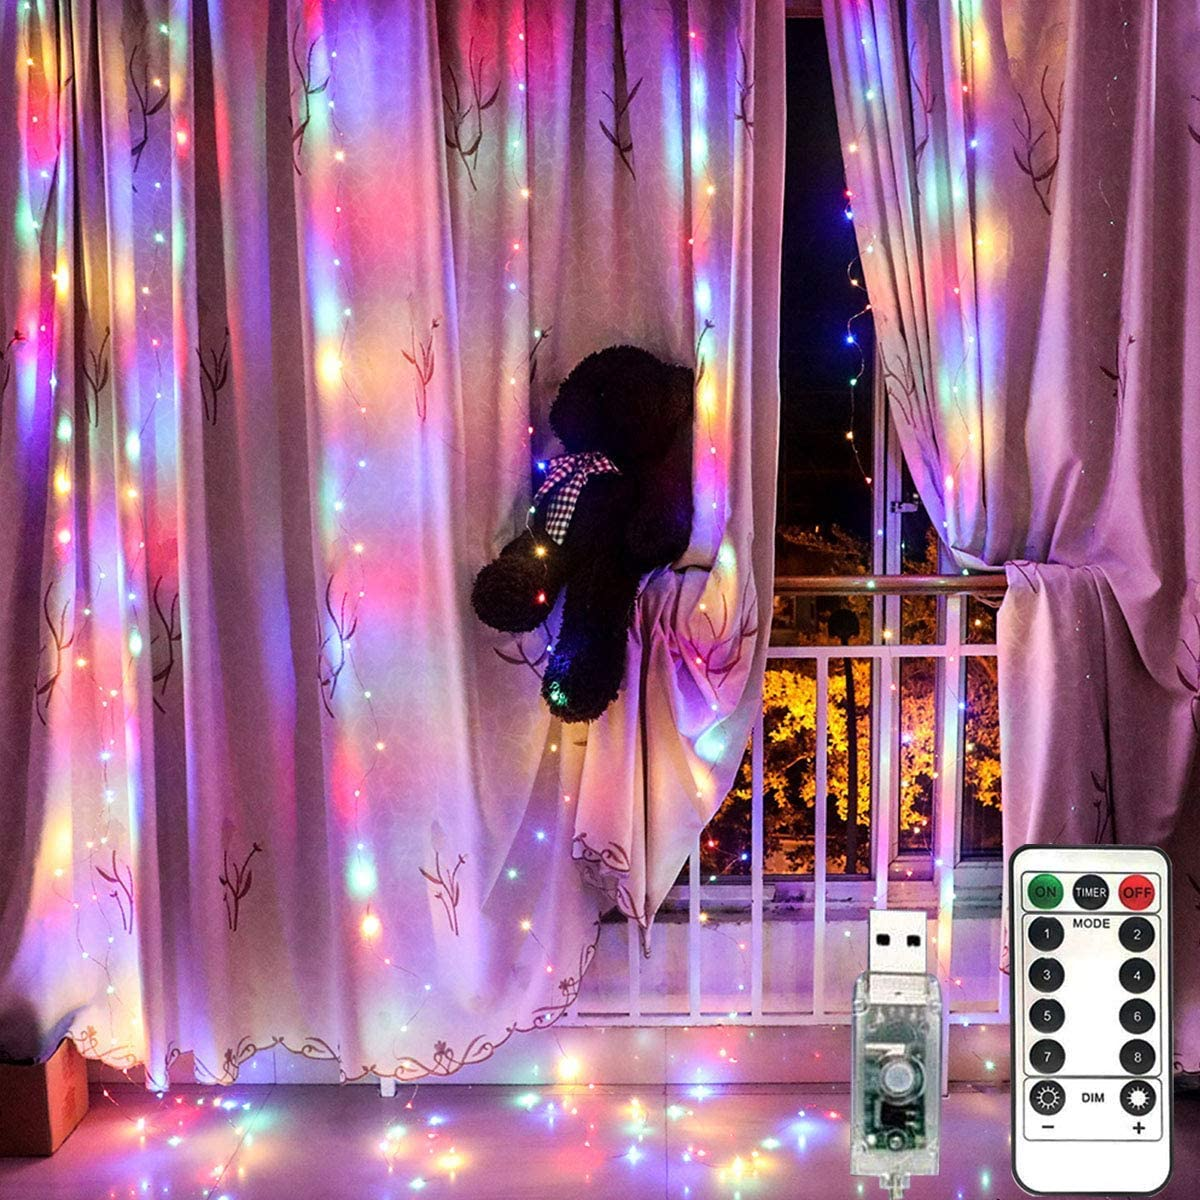 LiyuanQ 300 LED Window Curtain Fairy Lights USB Plug in Curtain String Lights 8 Modes Remote Control Twinkle Lights LED Silver String Lights for Indoor Wedding Party Garden Bedroom Decor (Multi Color)